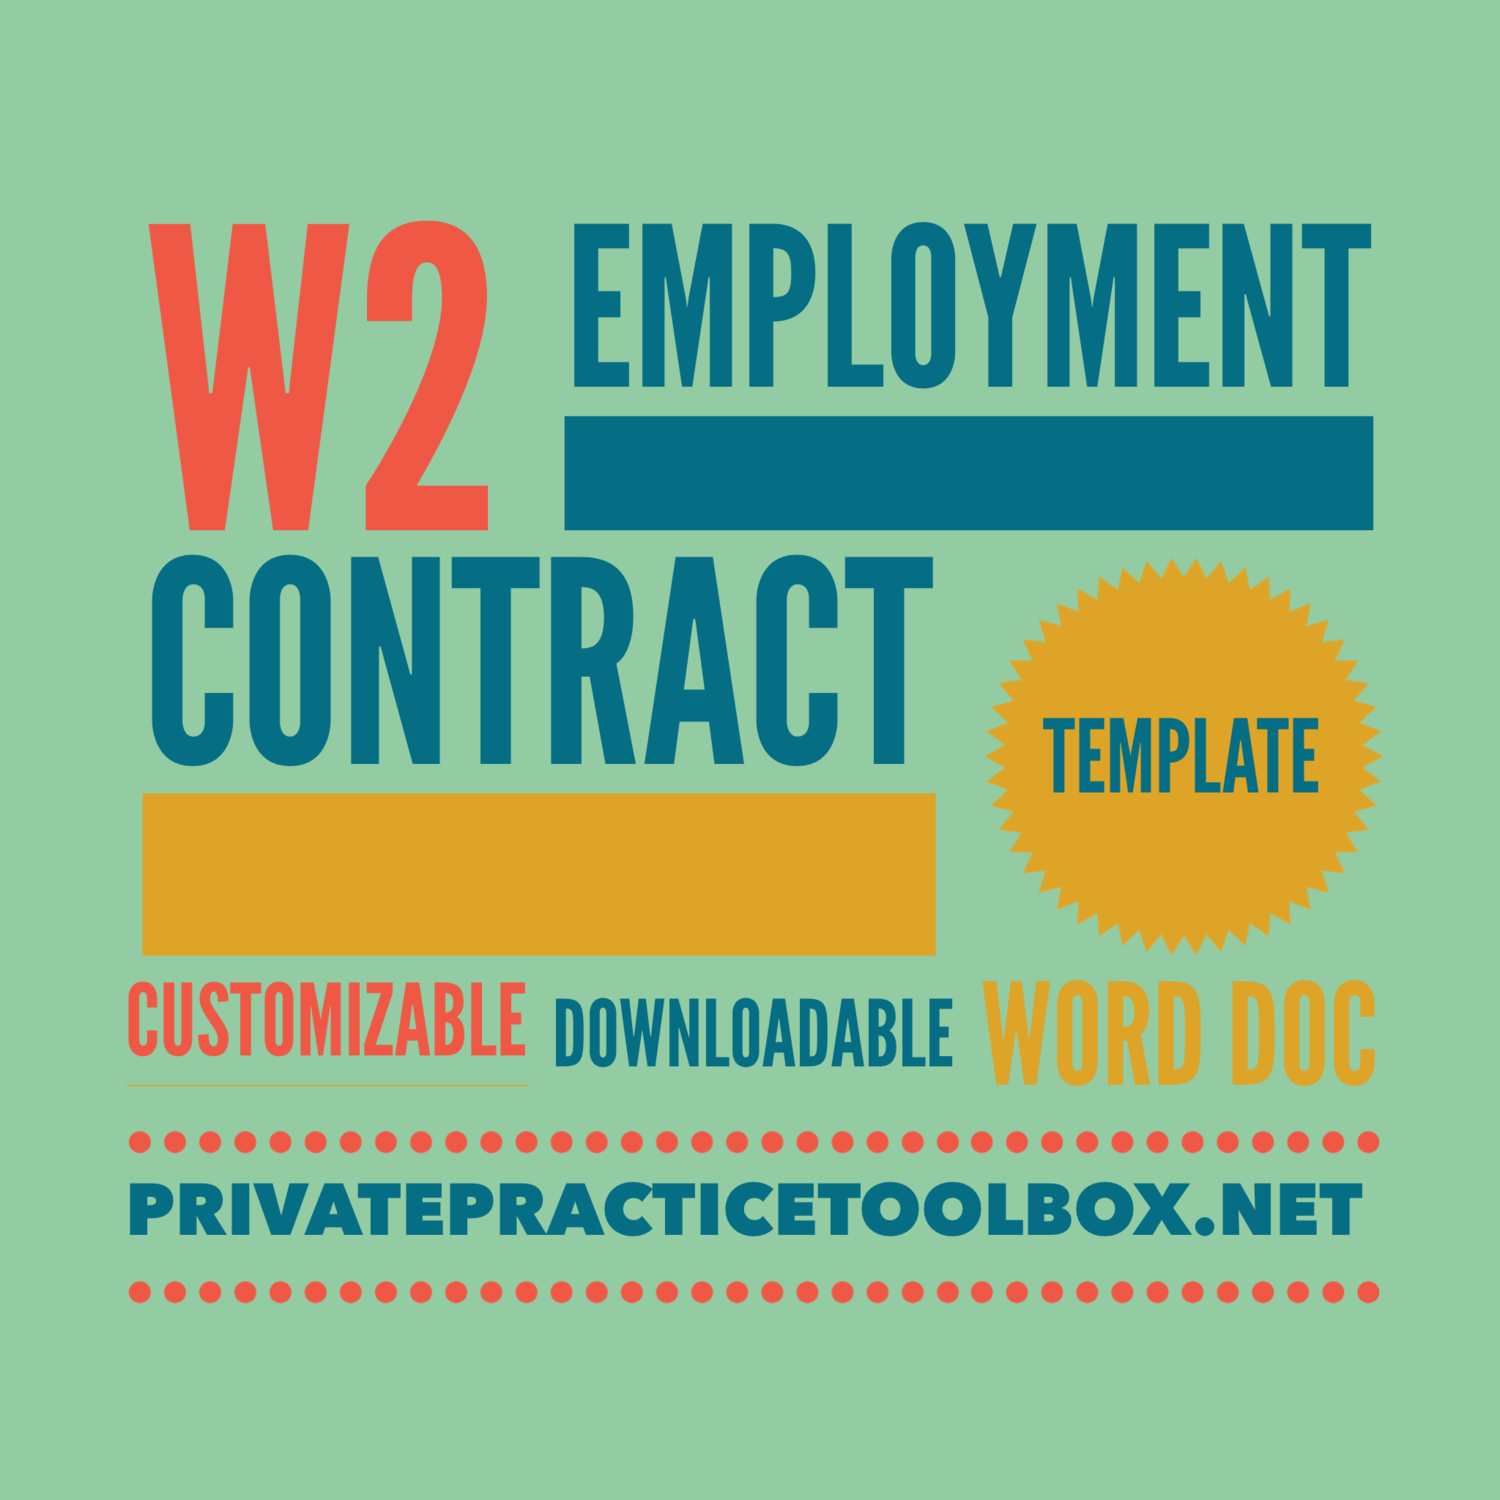 W Employee Contract Template  Private Practice